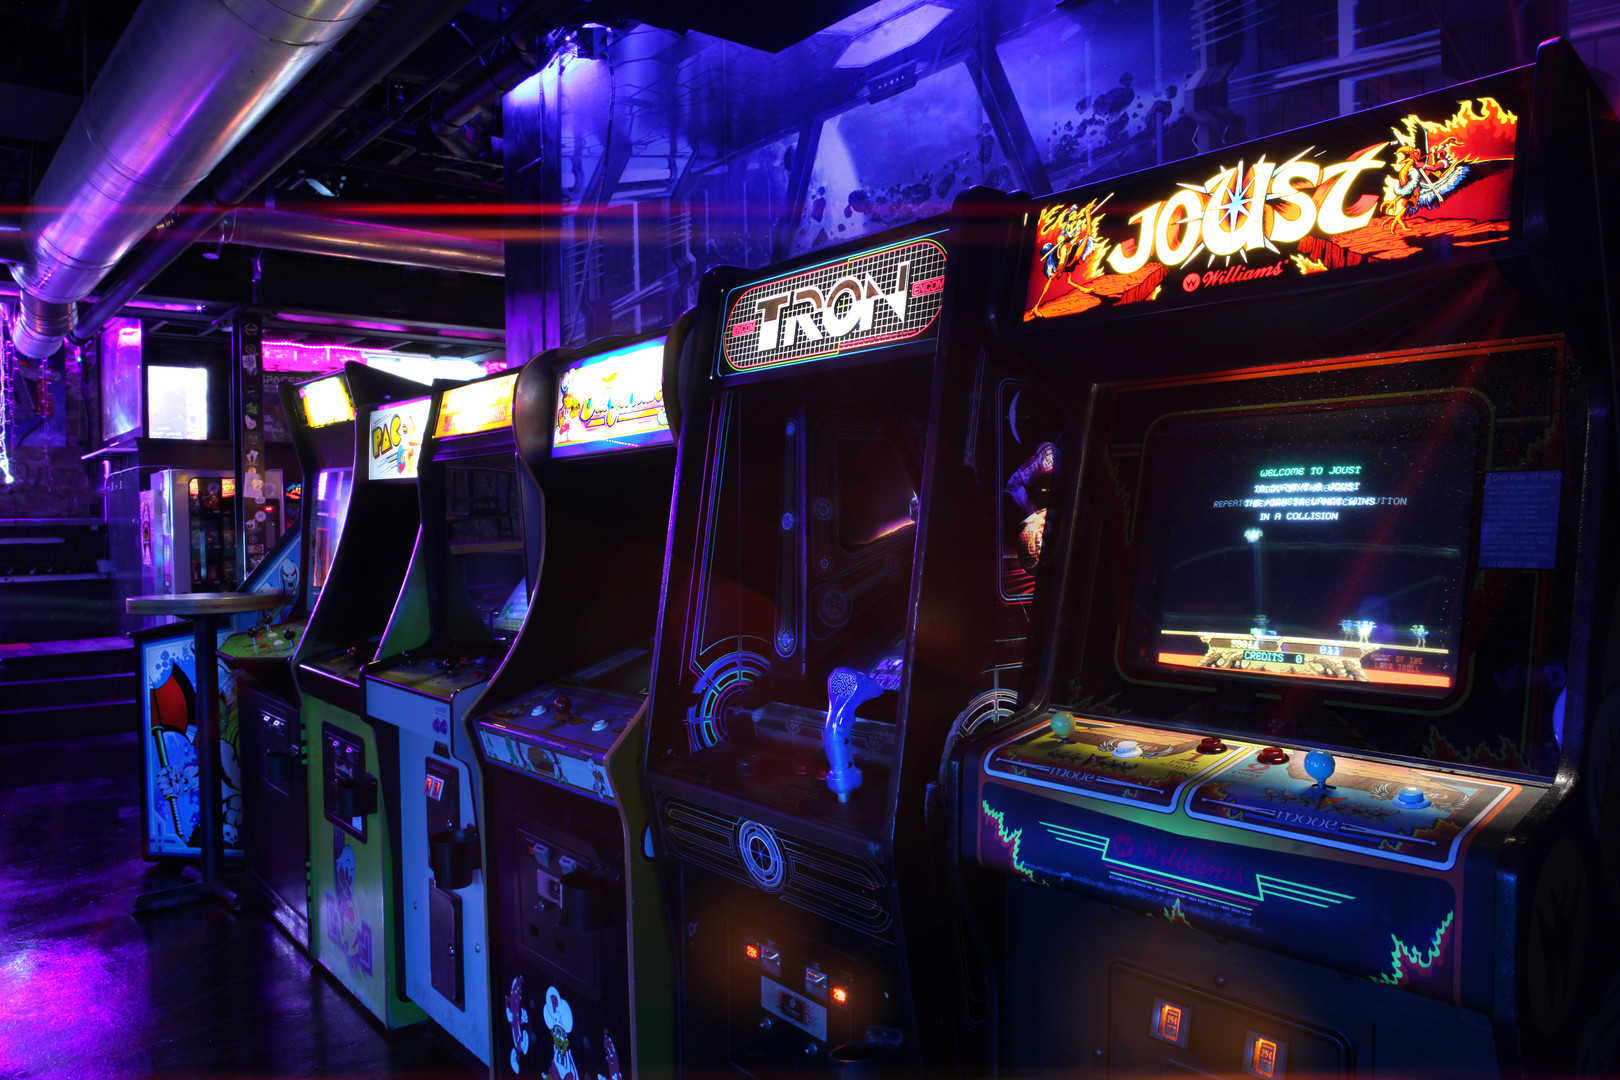 Spacebar-Arcade-Boise-Bar-Classic-Arcade-Games